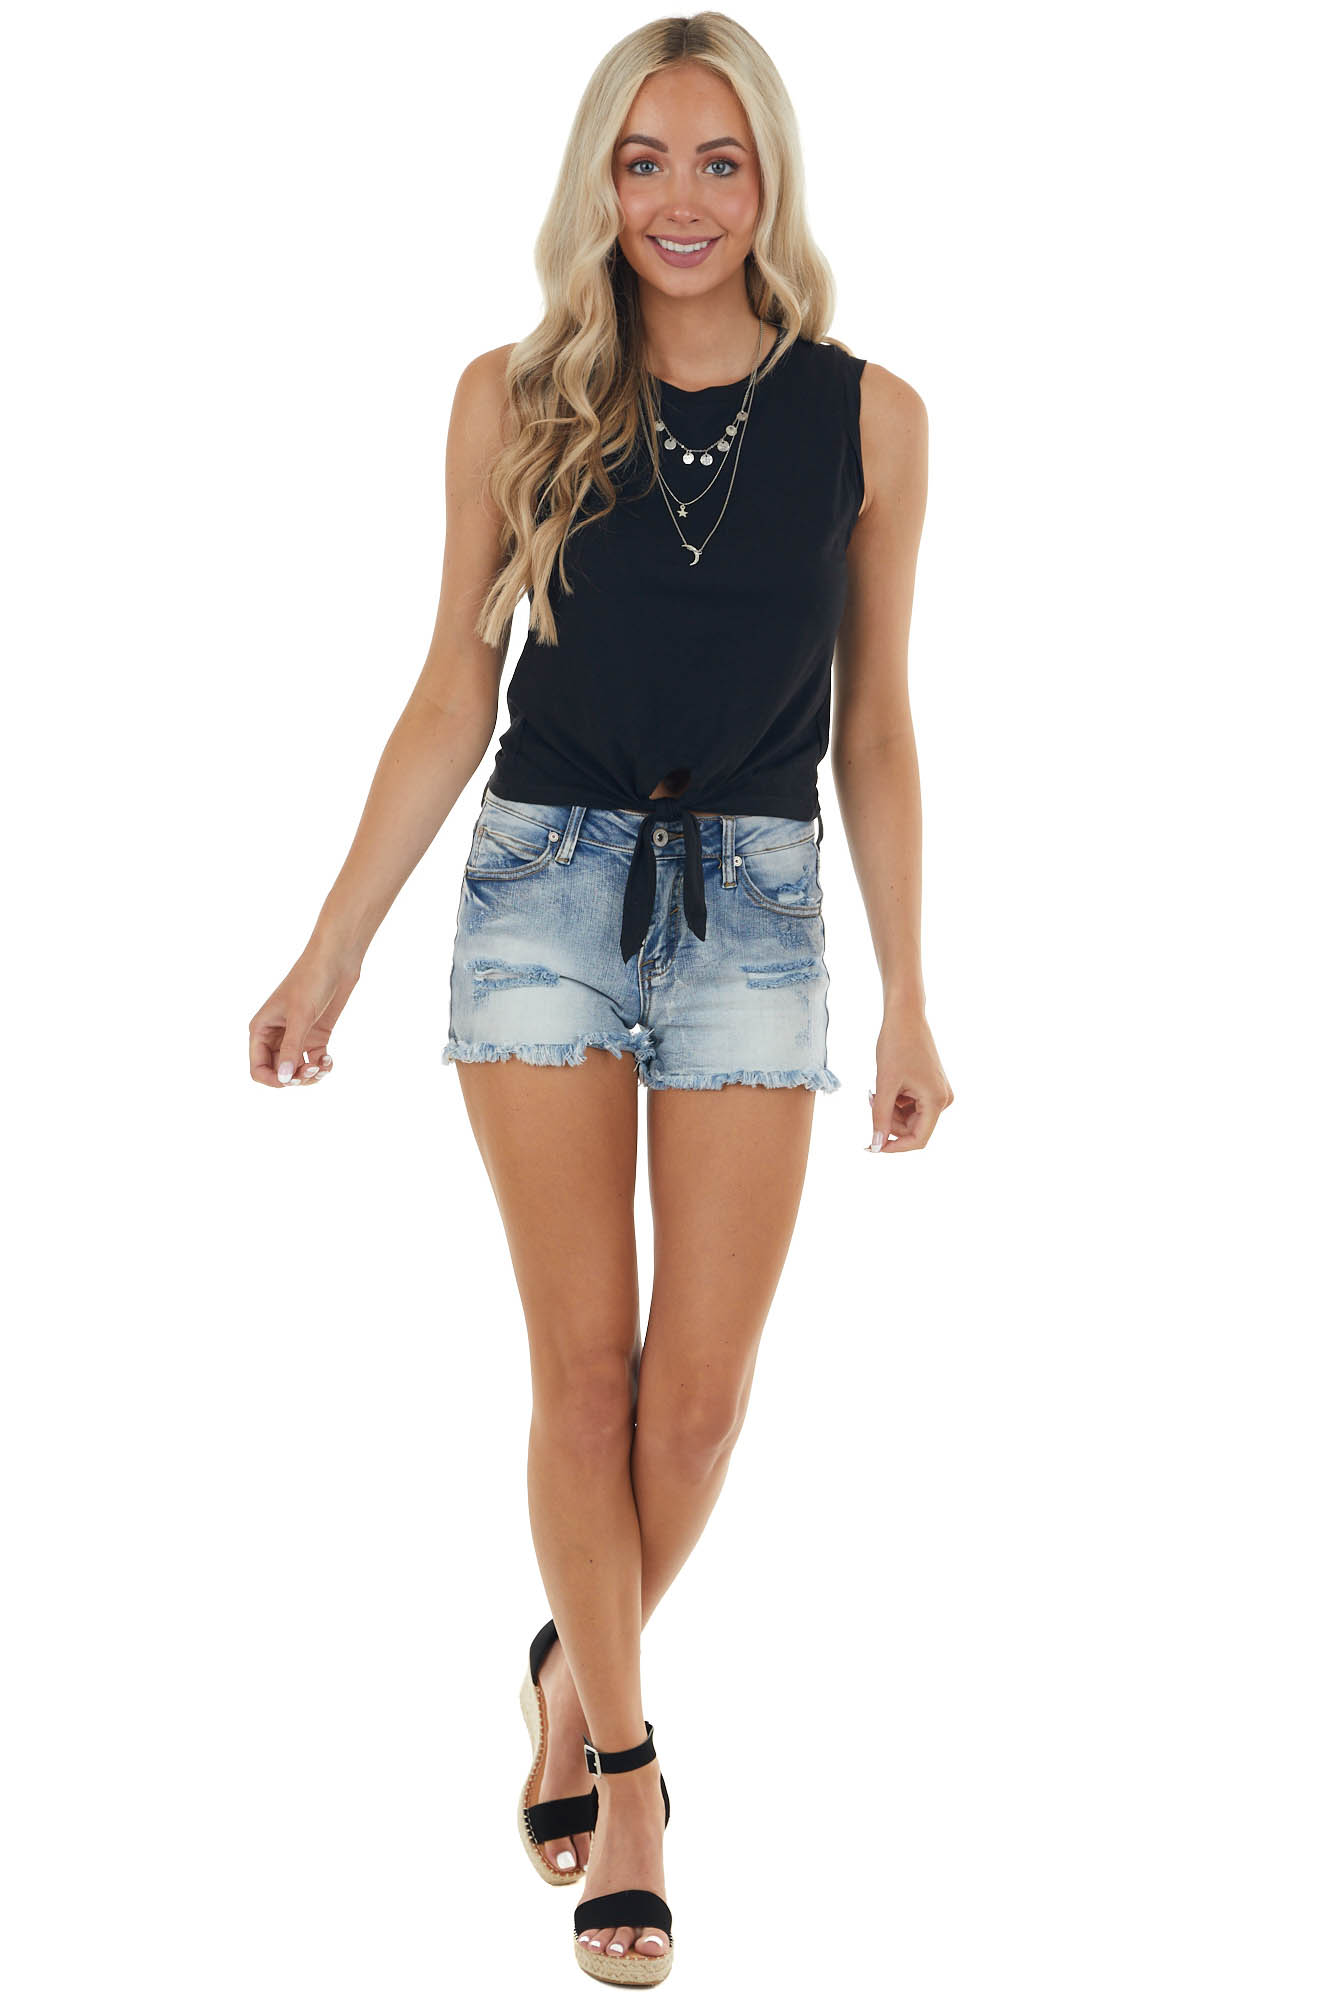 Black Sleeveless Stretchy Knit Top with Front Tie Detail